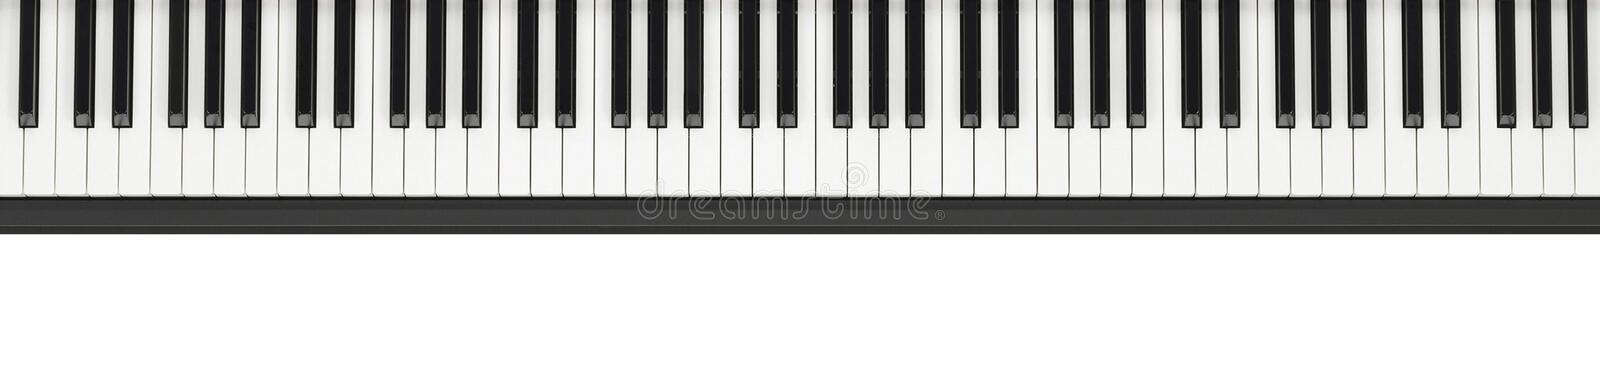 Piano keyboard background royalty free stock photography